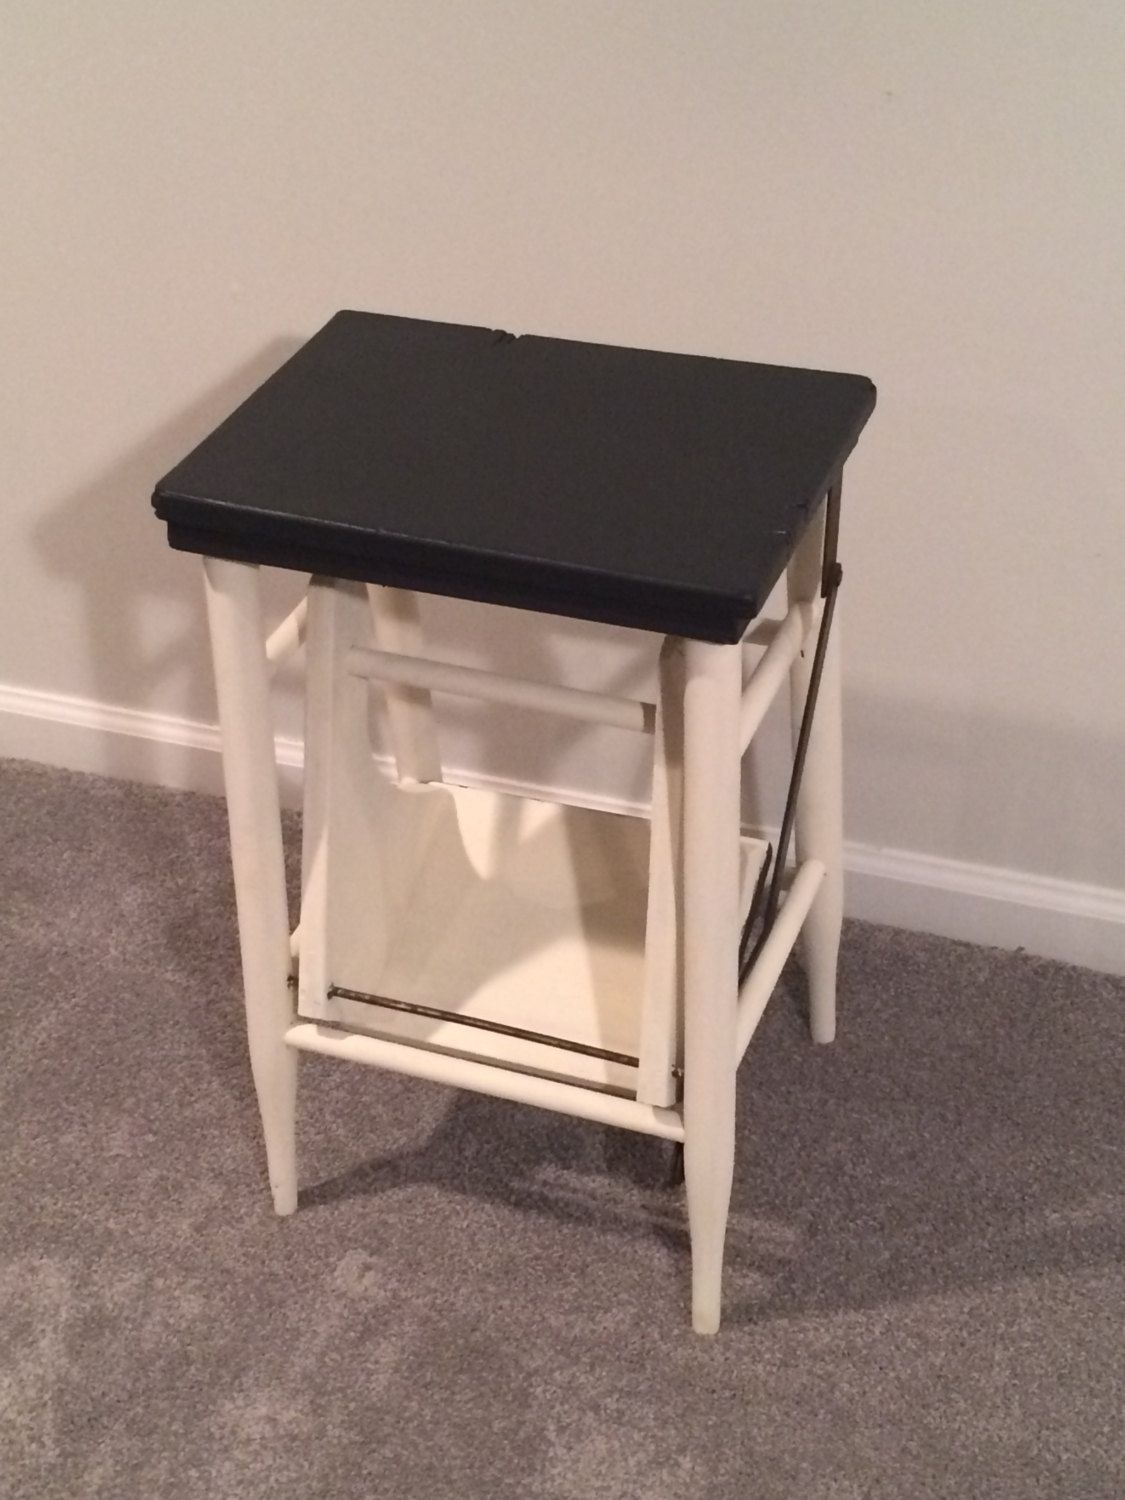 Folding Step Stool, Small Ladder, Utility Chair, End Table, Black And White